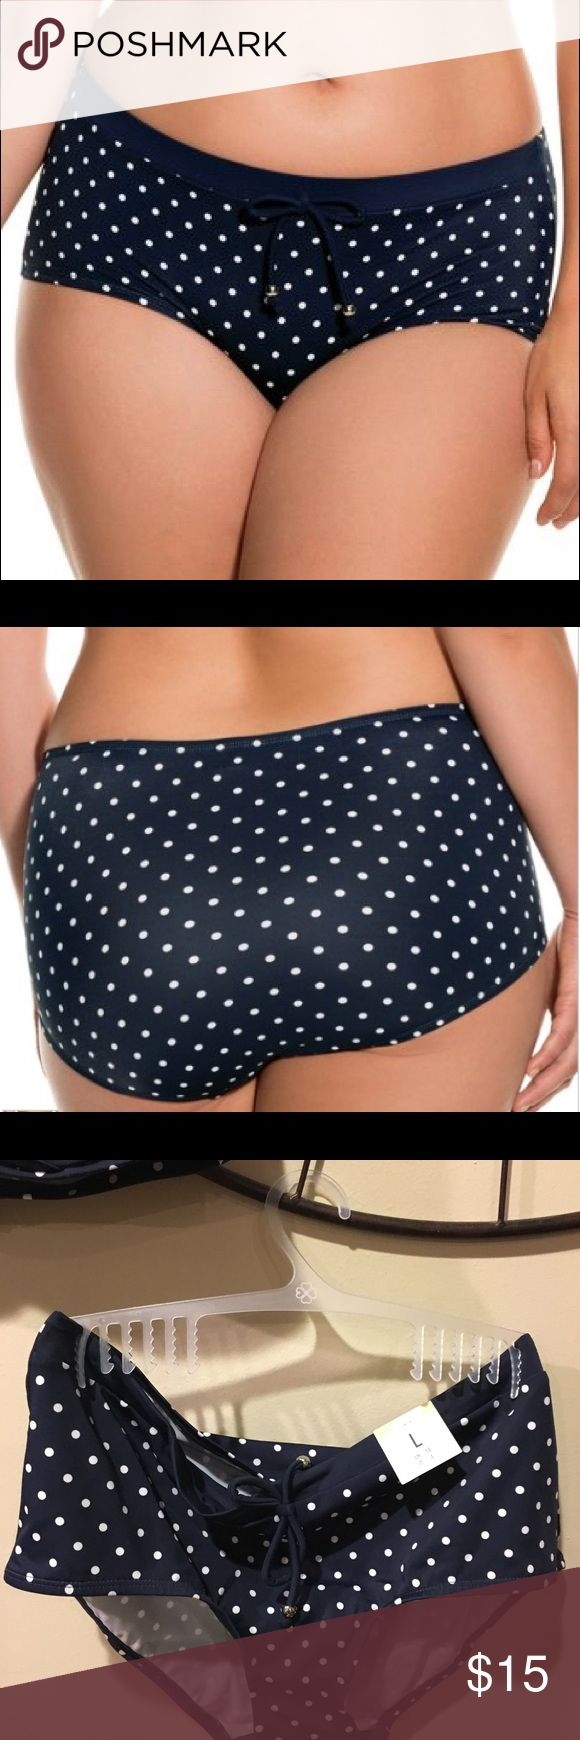 NWT Dorina High Waist Palm Springs Bikini Bottoms Navy Polka Dot bikini bottoms with high waist and body shaping panels. 80% polyester 20% elastane. Imported. Bundle with top for additional discount! Dorina Swim Bikinis